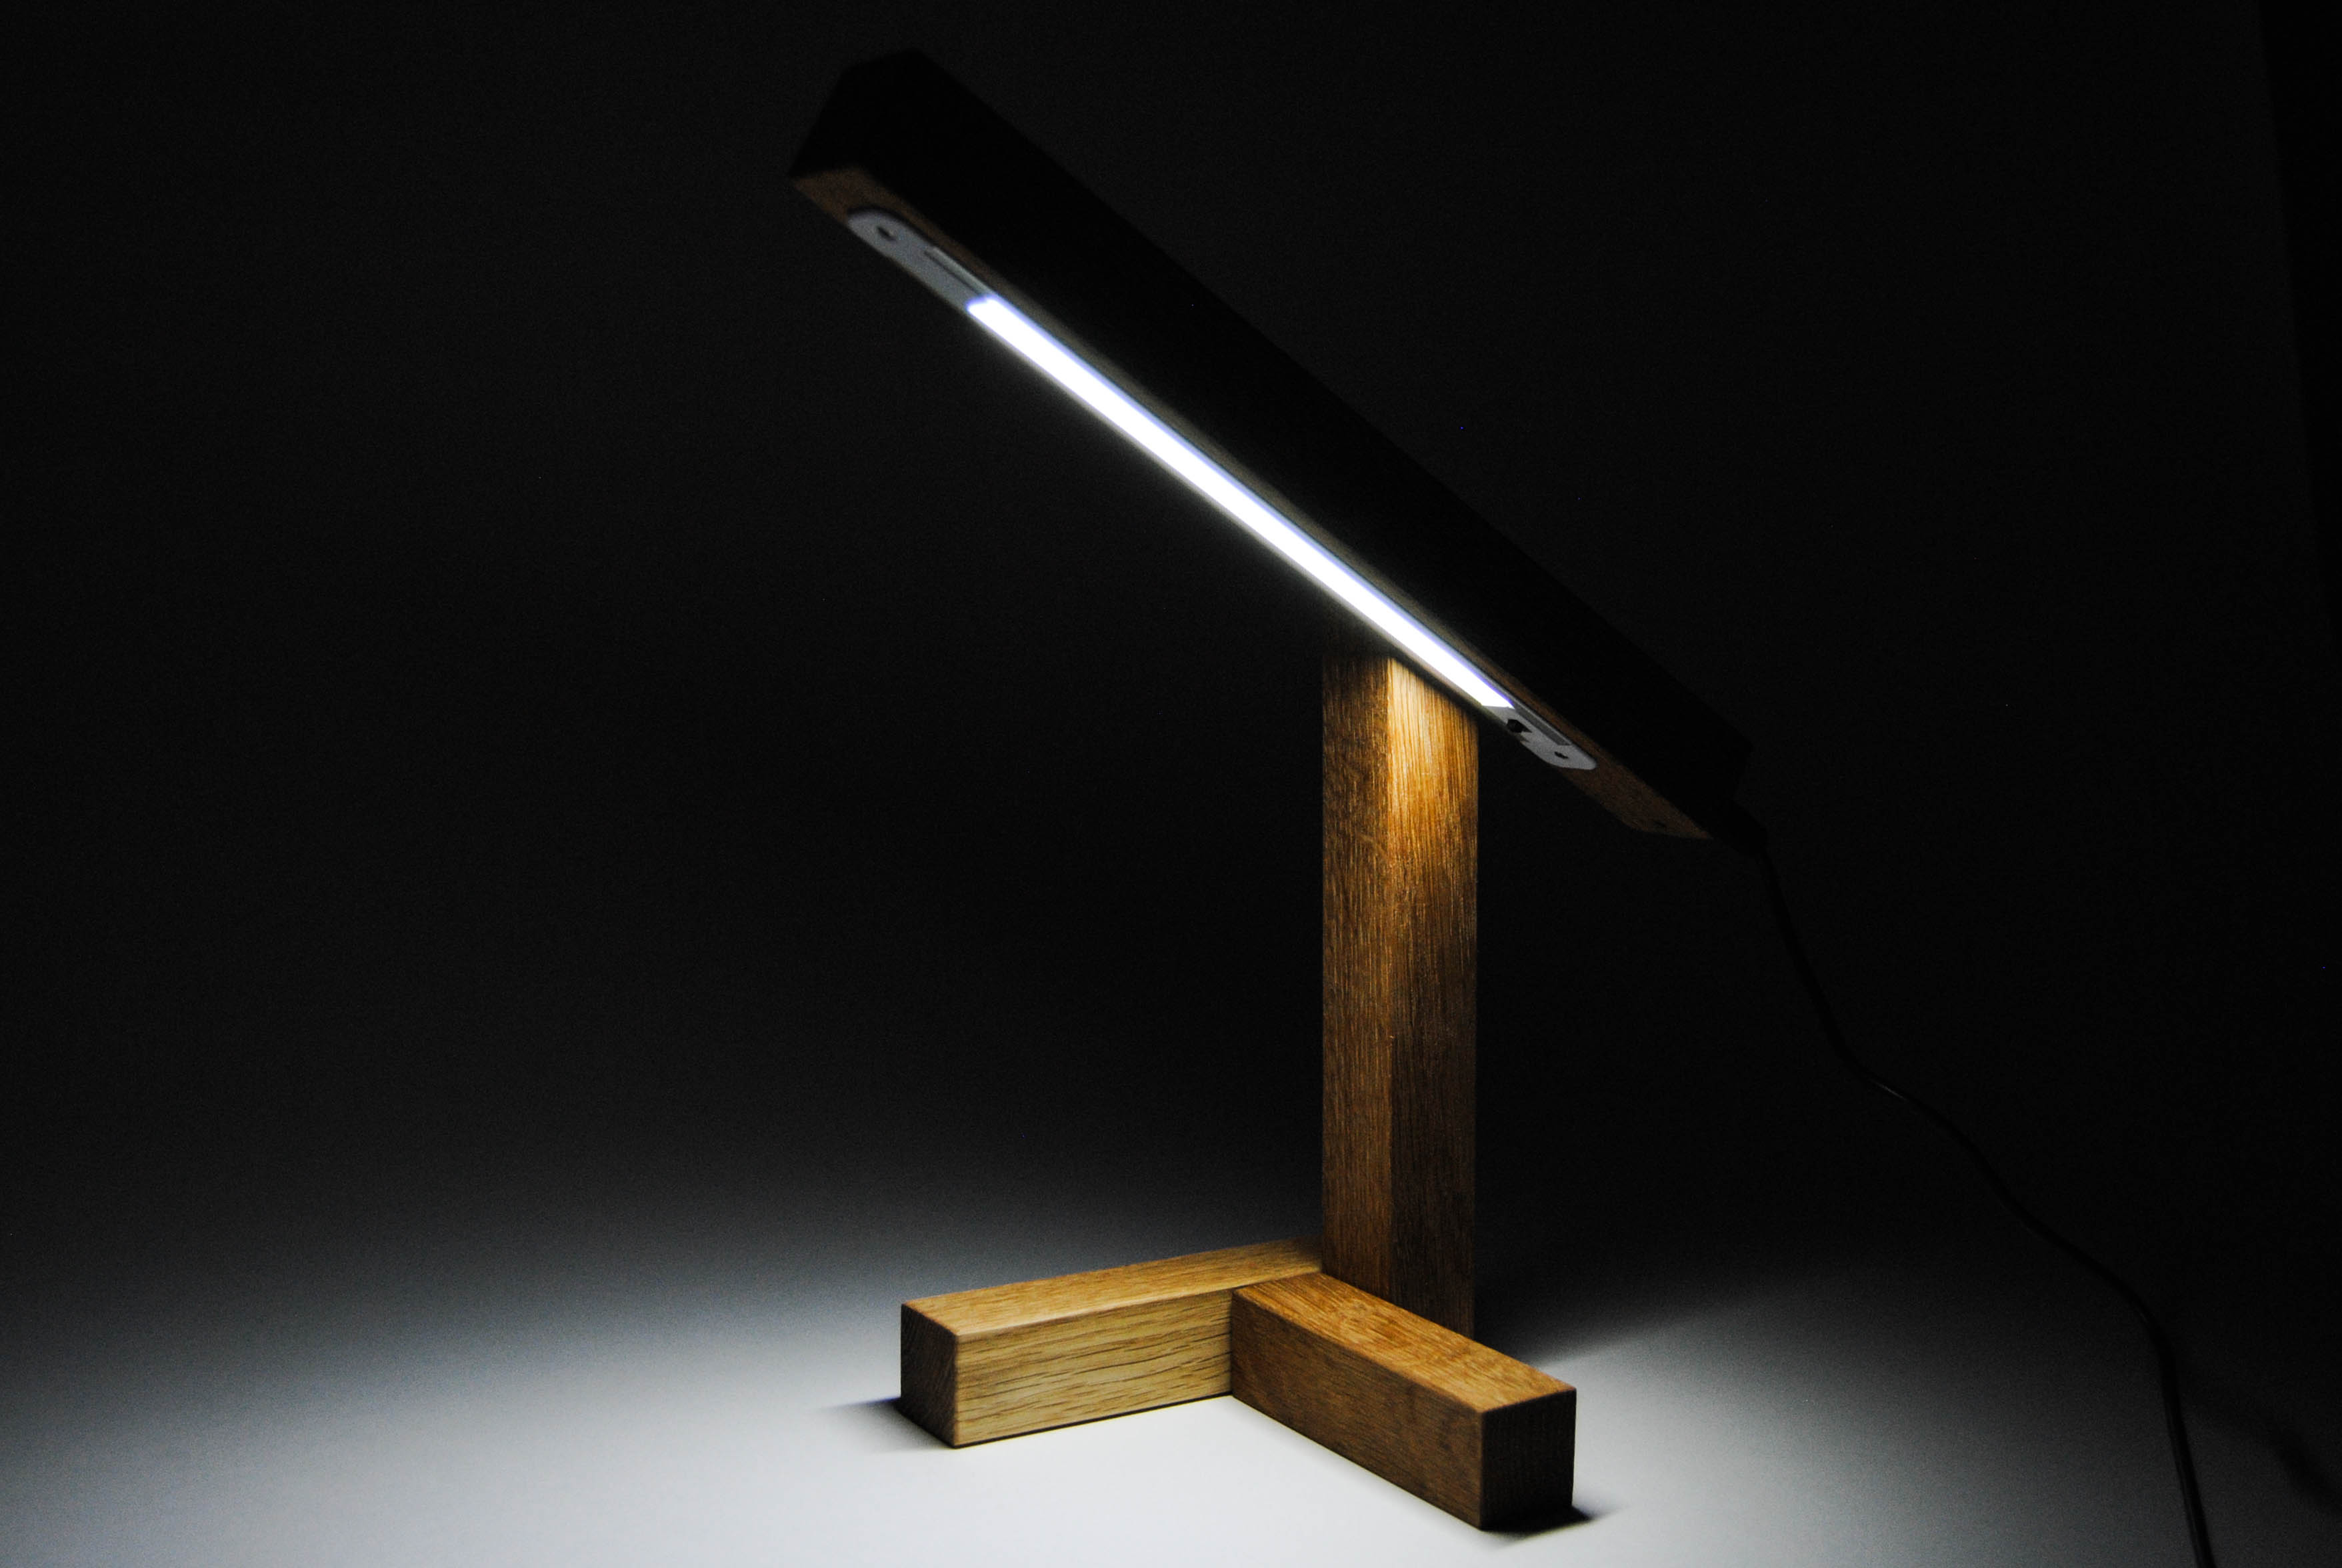 light of the tris wooden lamp